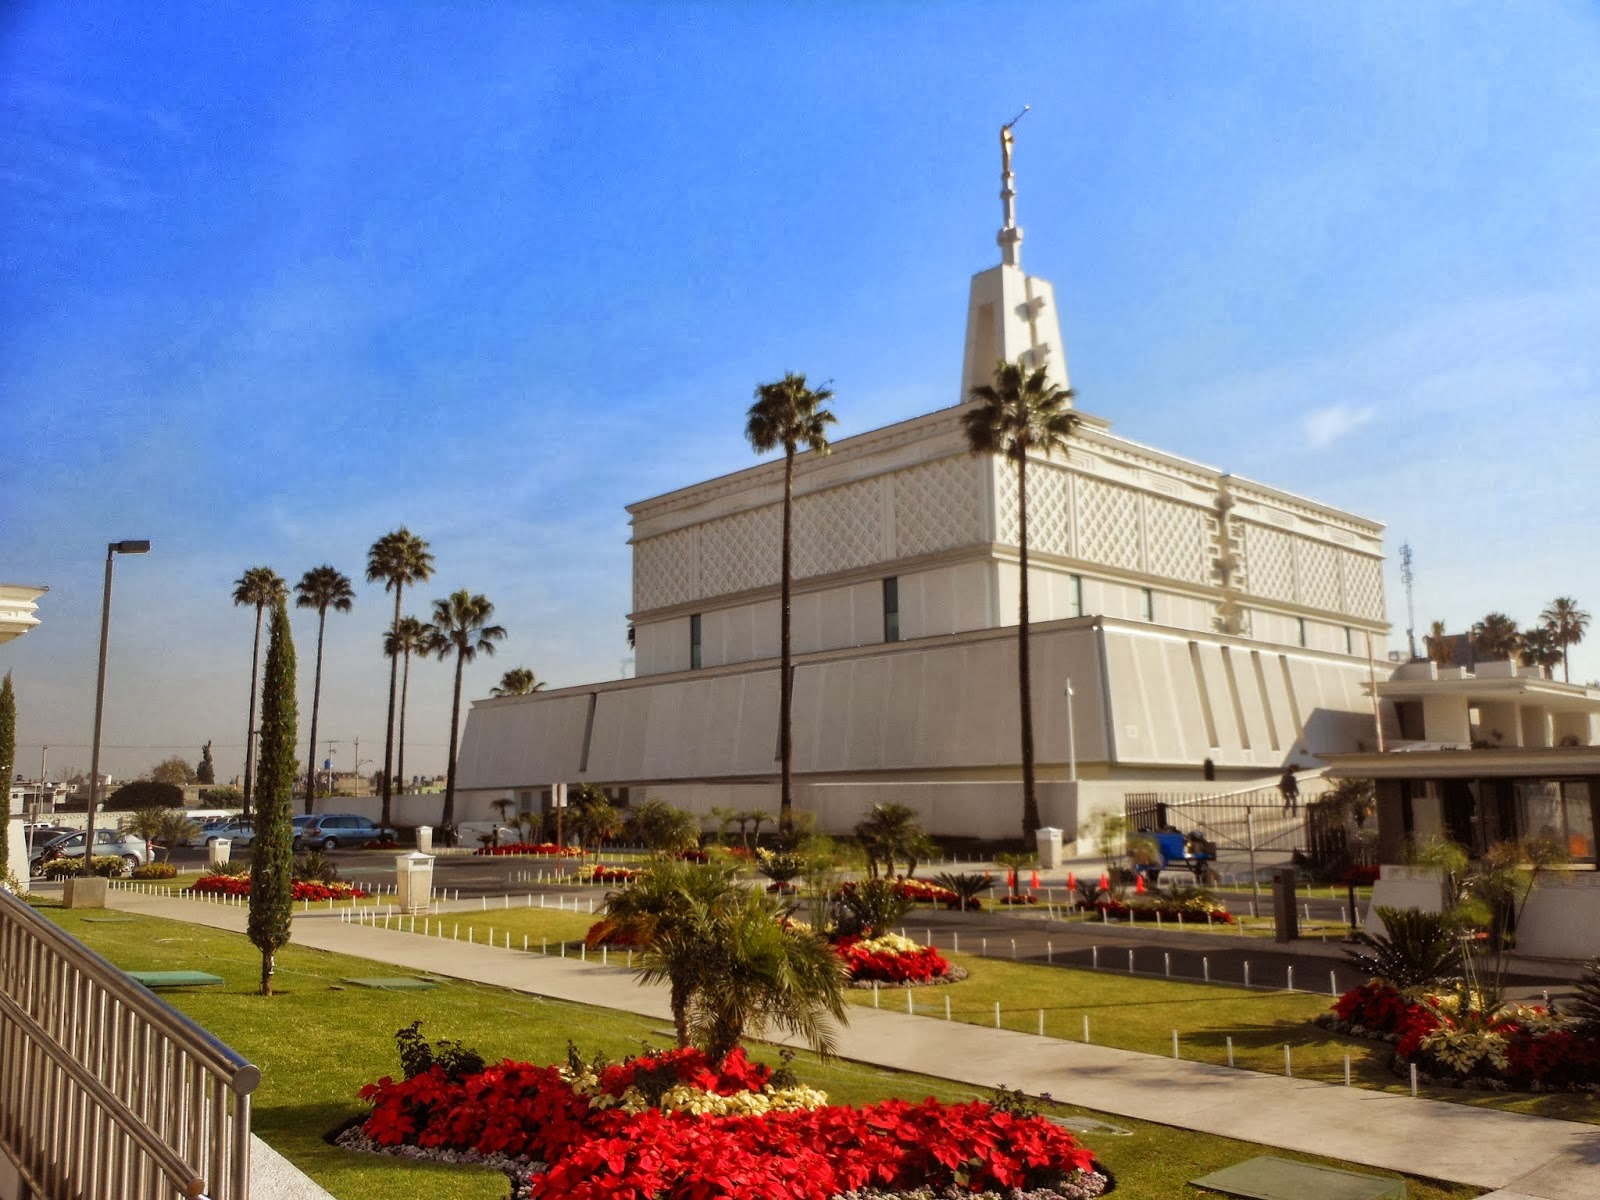 view of Mexico City L D S Temple w/ poinsettias poinsettas